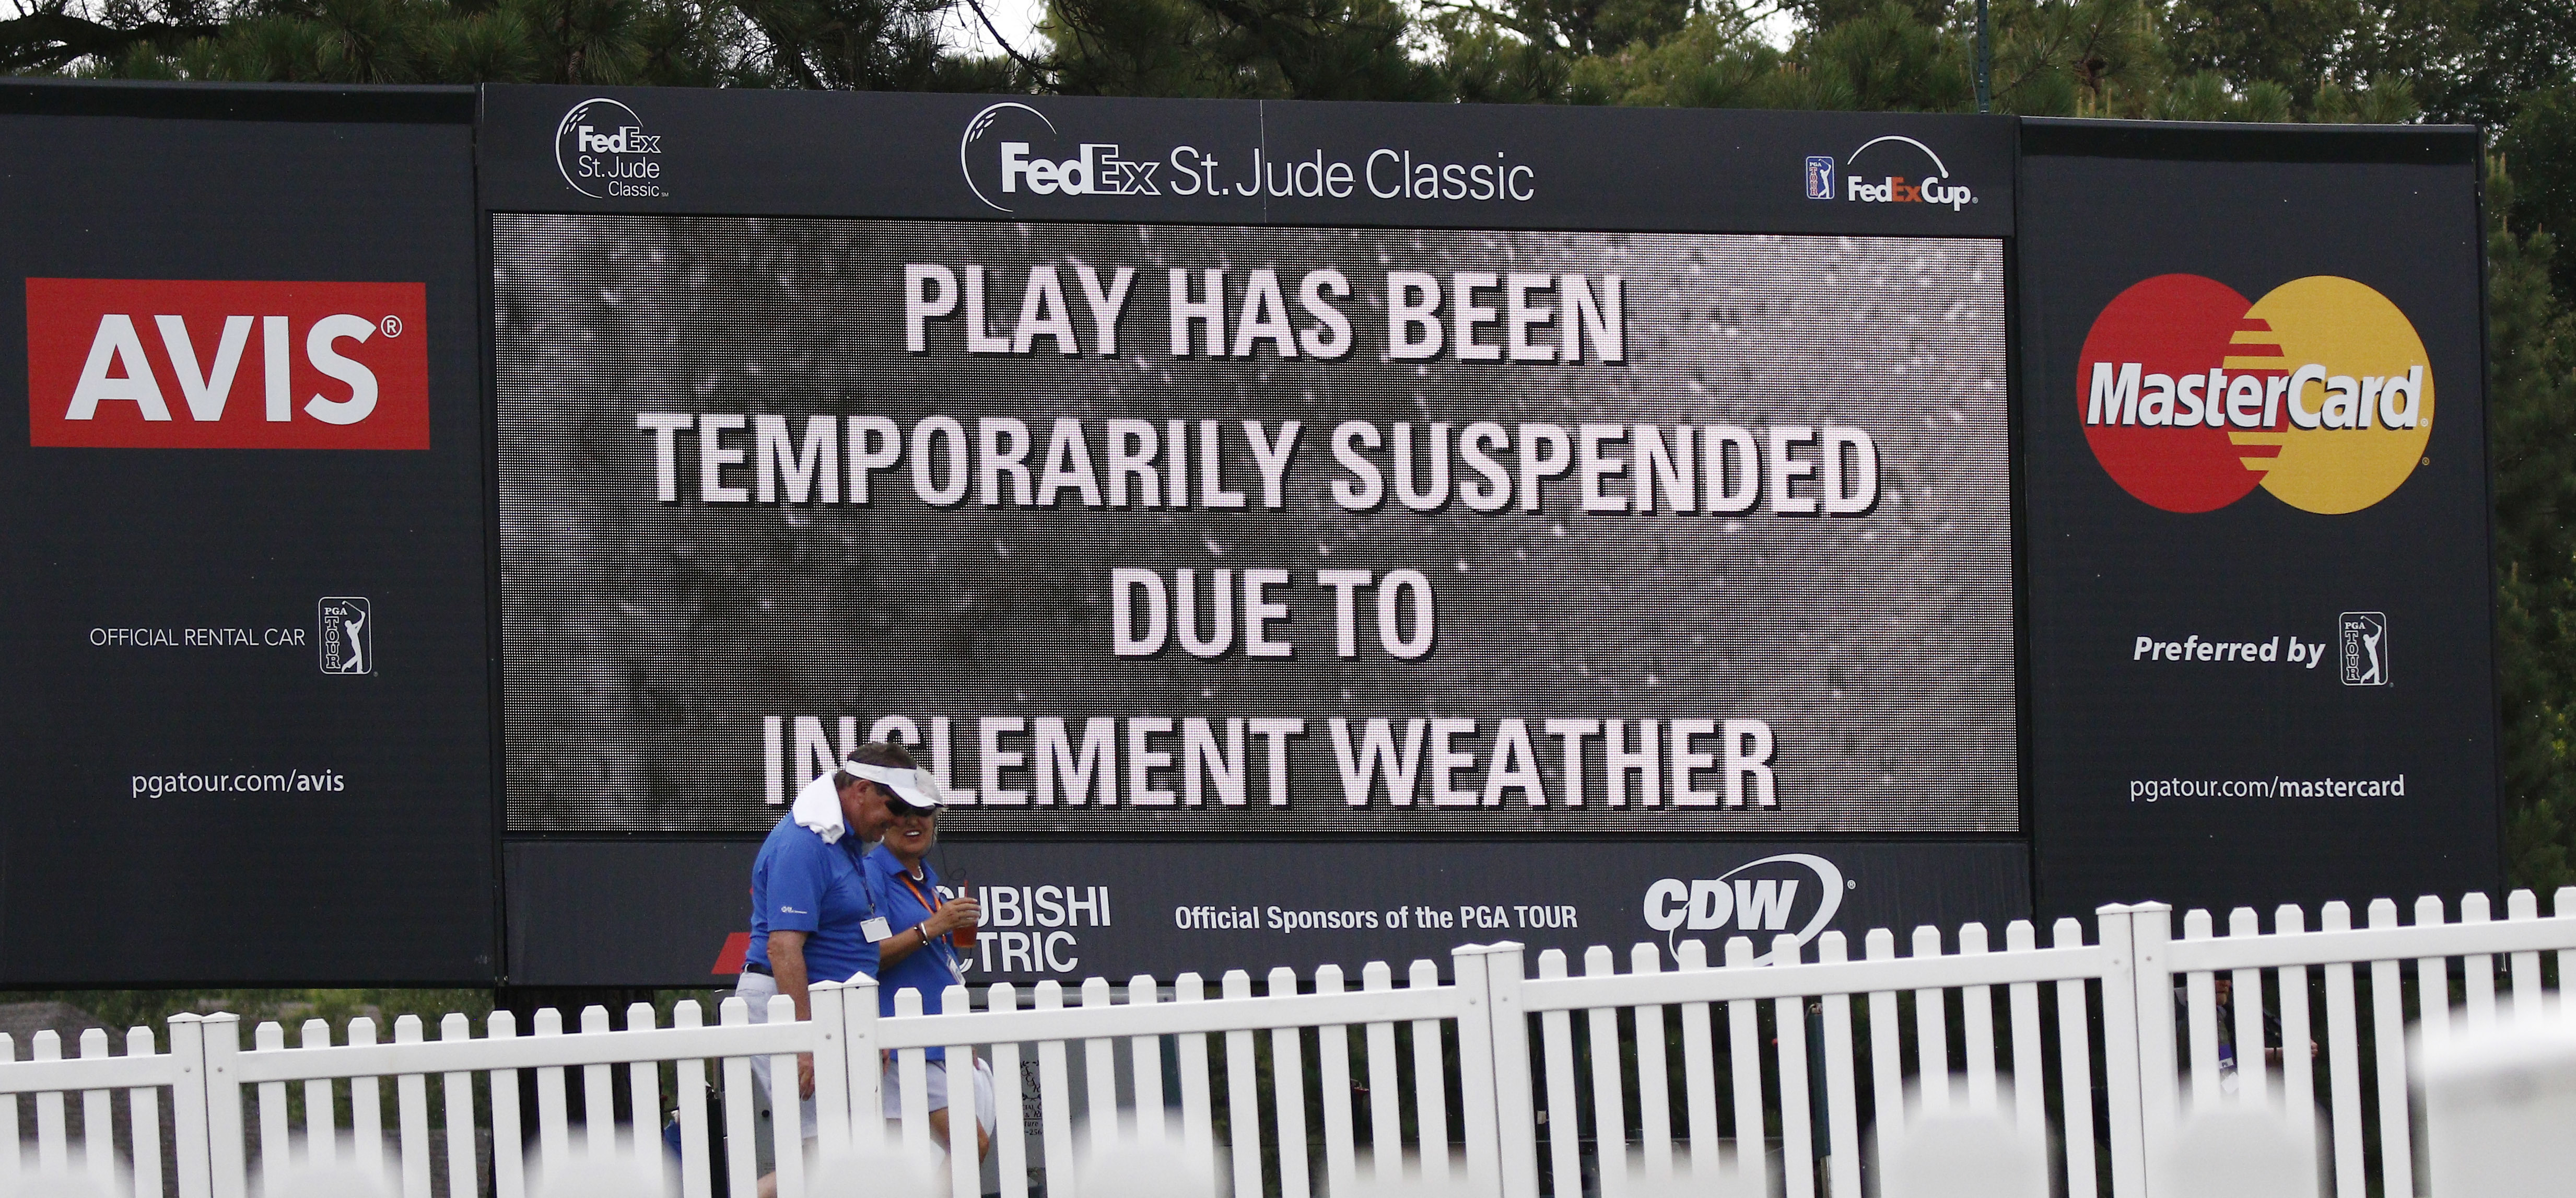 Warning signage informs players and fans of the play being temporarily suspended due to inclement weather on the final round of the FedEx St. Jude Classic Golf Tournament, Sunday, June 12, 2016, in Memphis, Tenn. (AP Photo/Rogelio V. Solis)